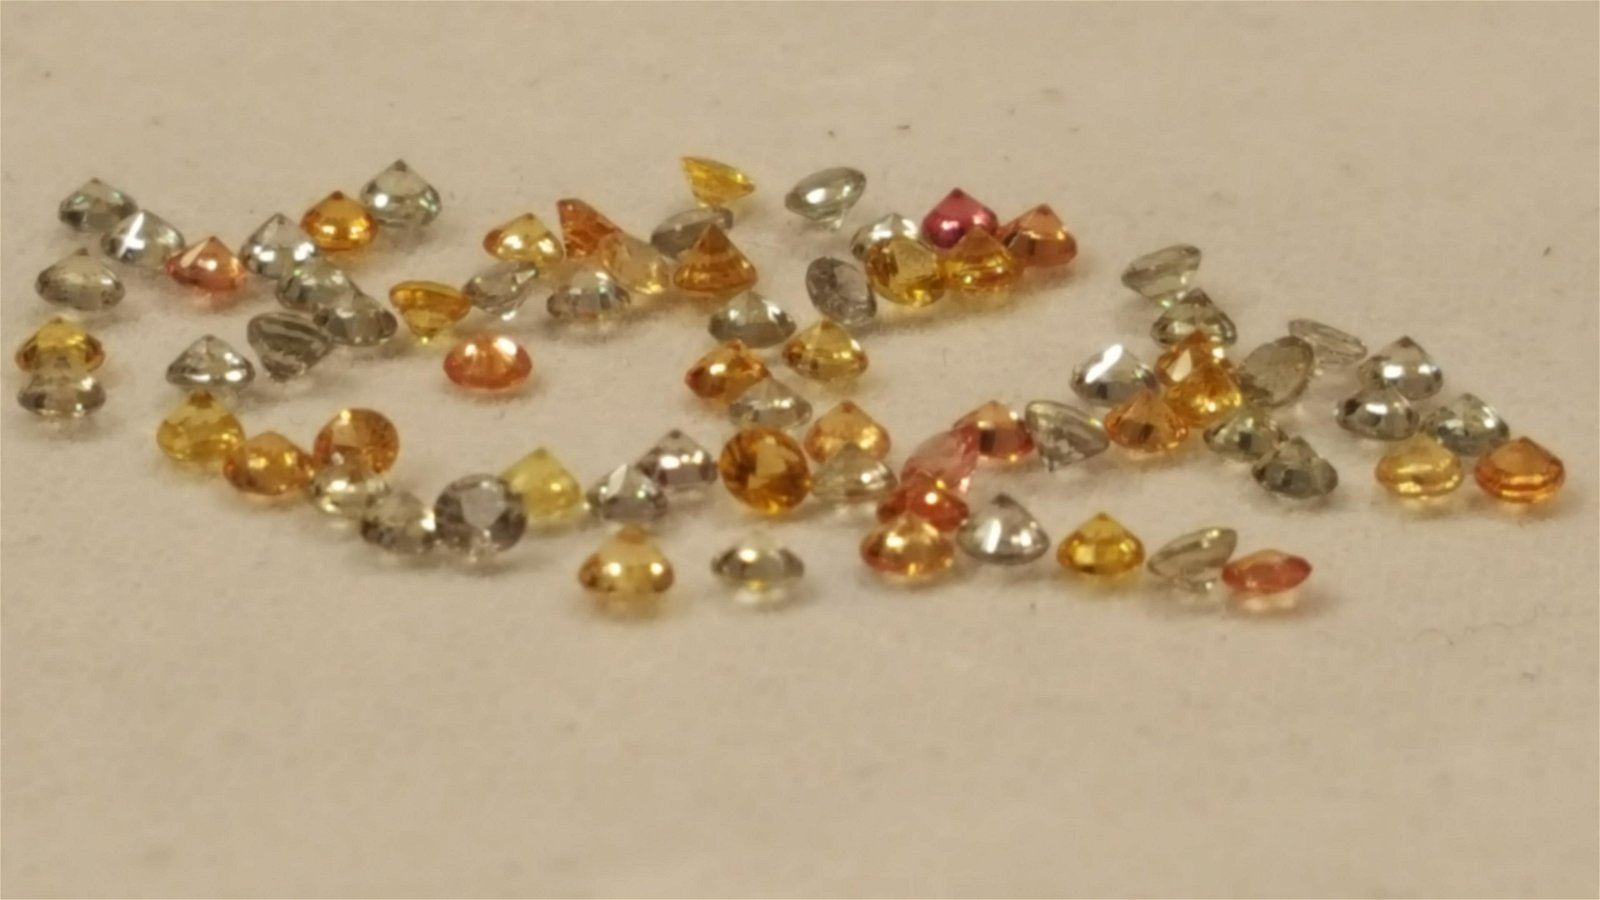 LOVELY 5.25 CT MIXED COLOR SAPPHIRE GEMSTONES.